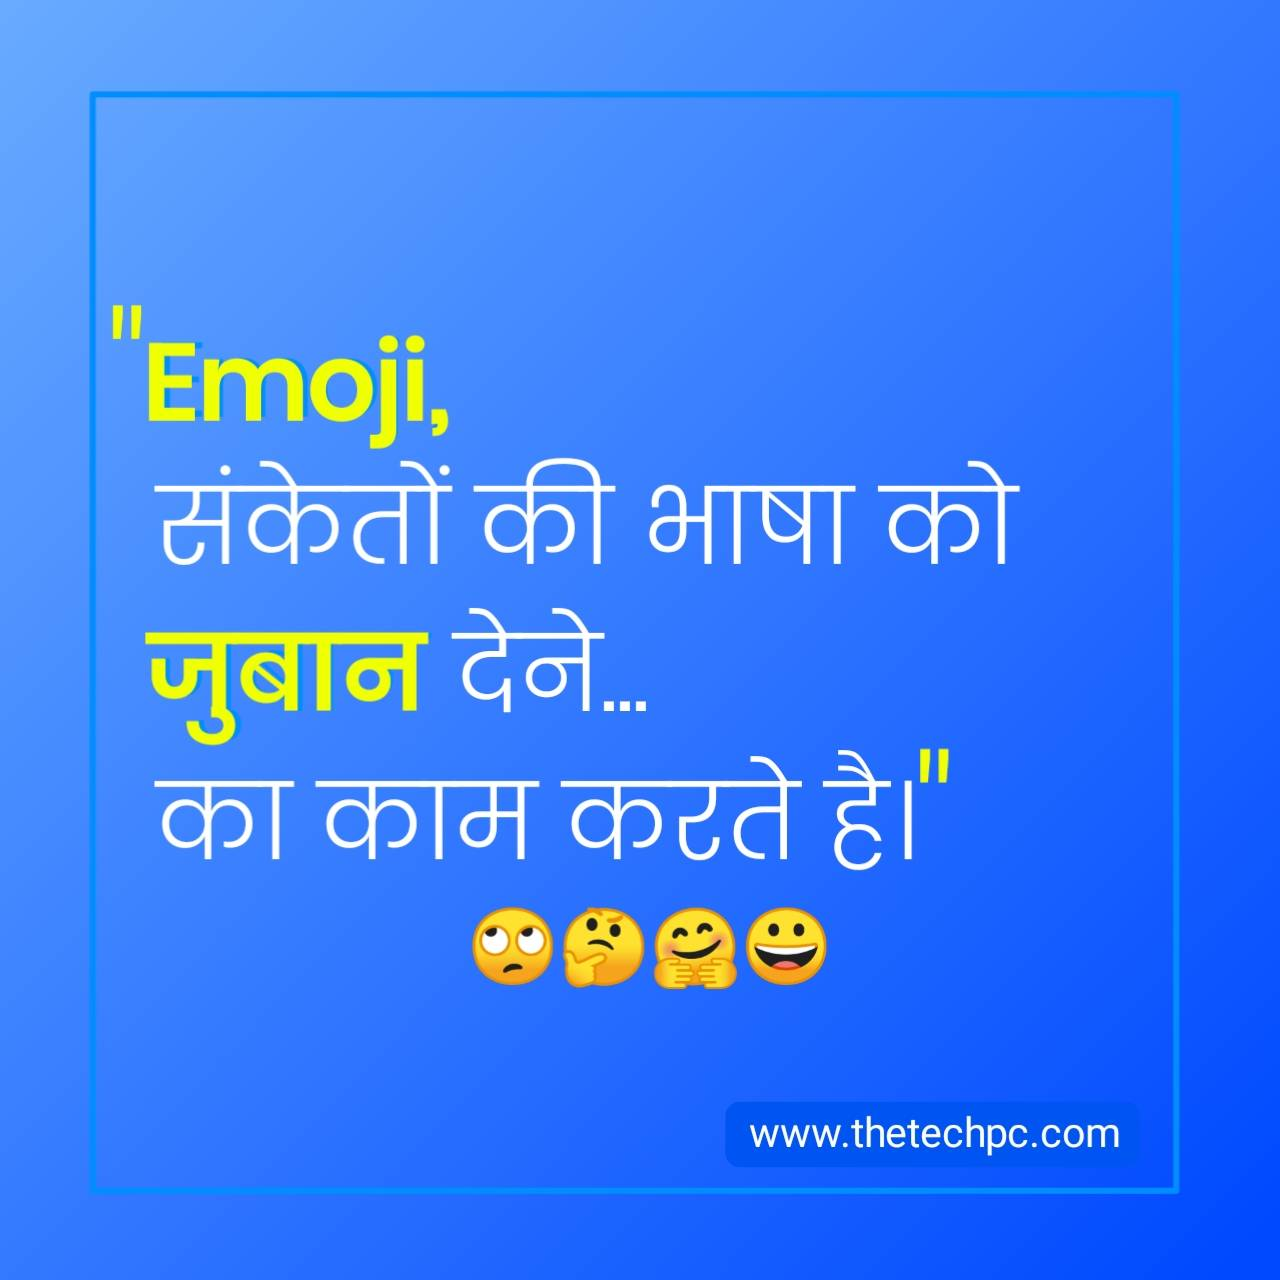 emoji-meaning-in-hindi